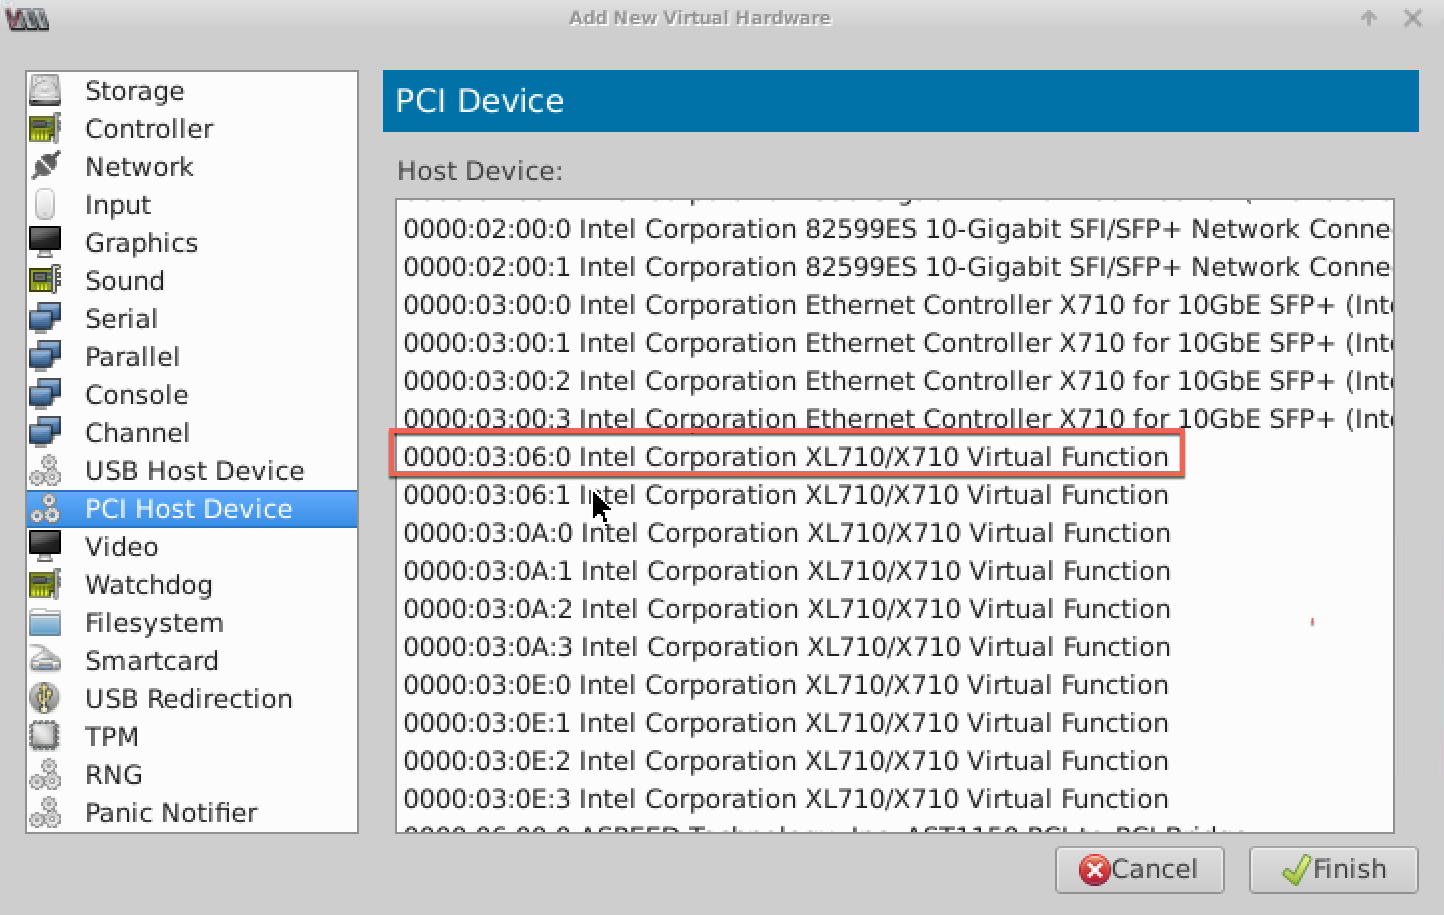 Configure a NetScaler VPX instance to use SR-IOV network interfaces